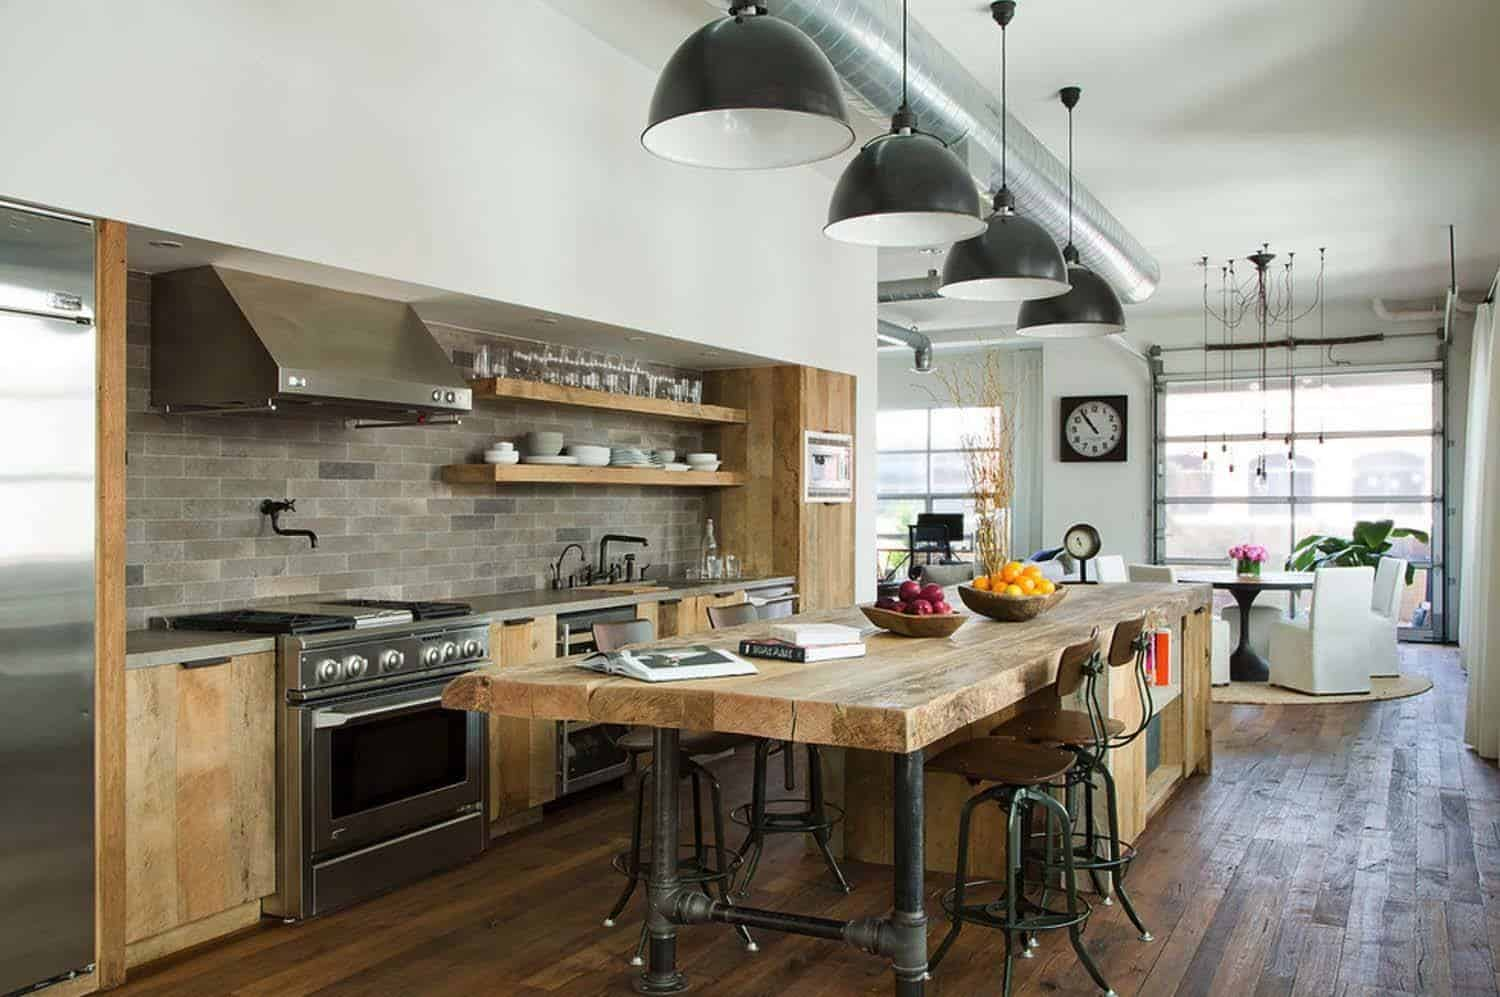 Delectable industrial loft space in Santa Monica, California